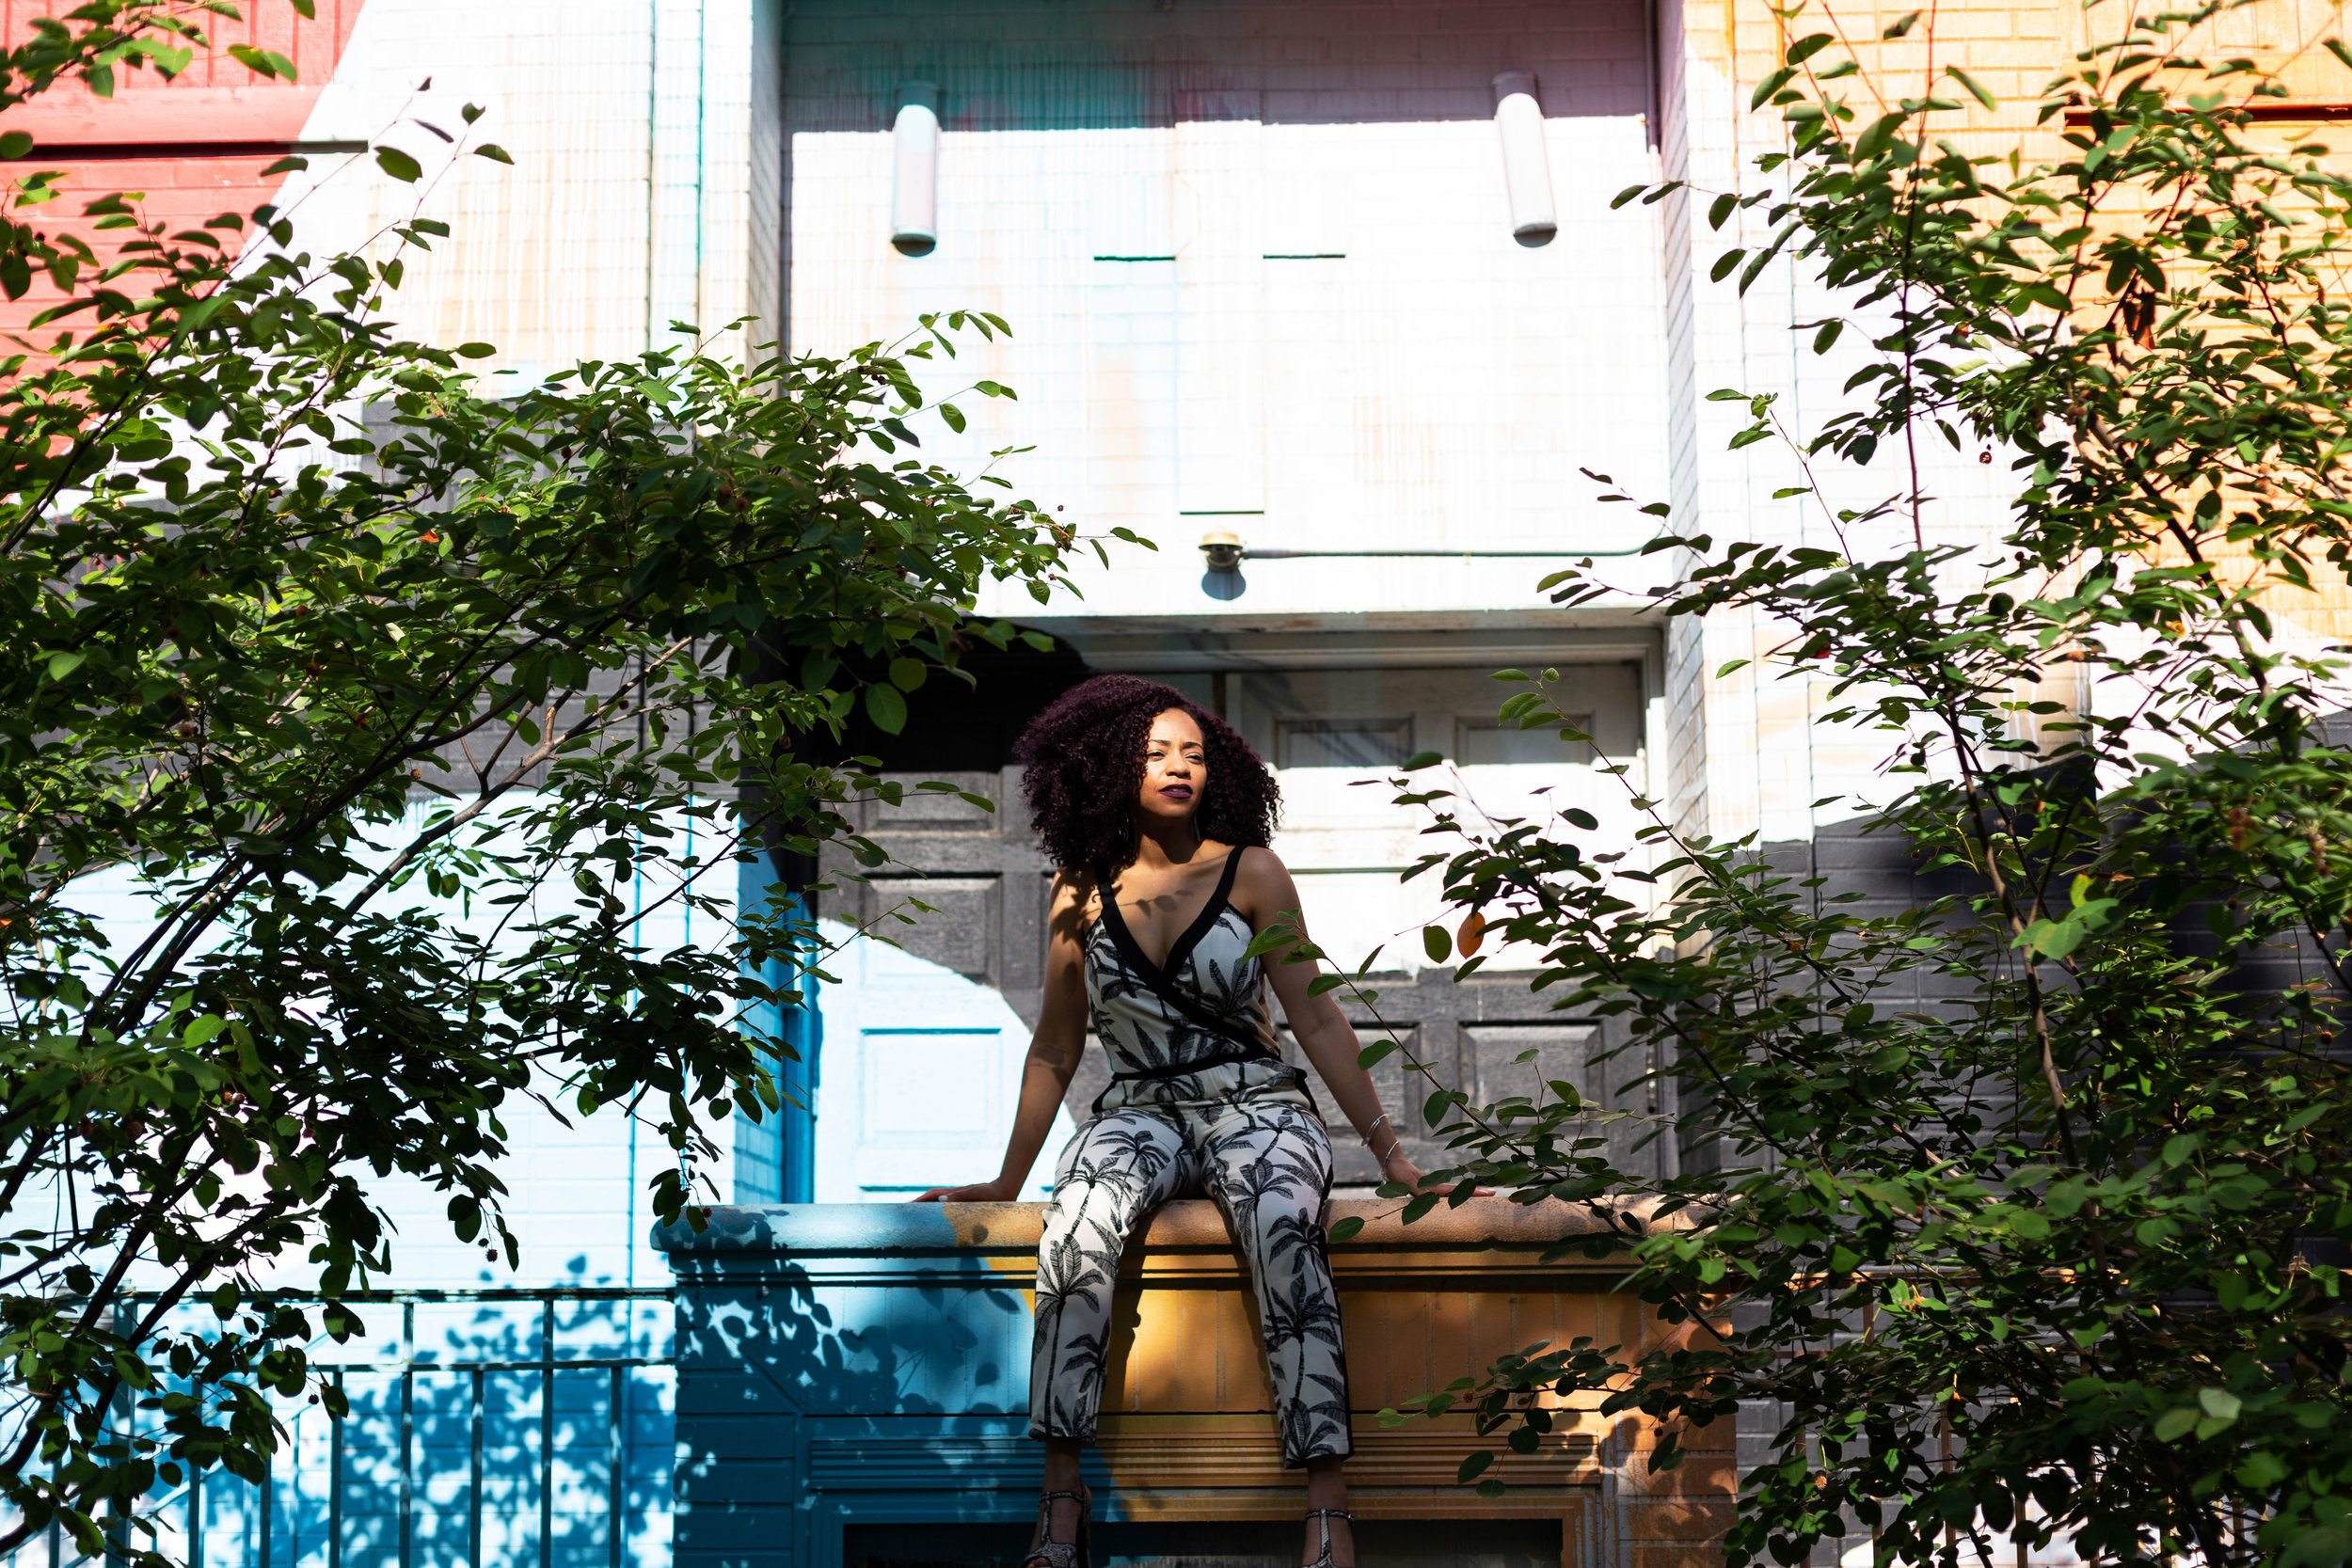 Black Woman Sitting On Ledge